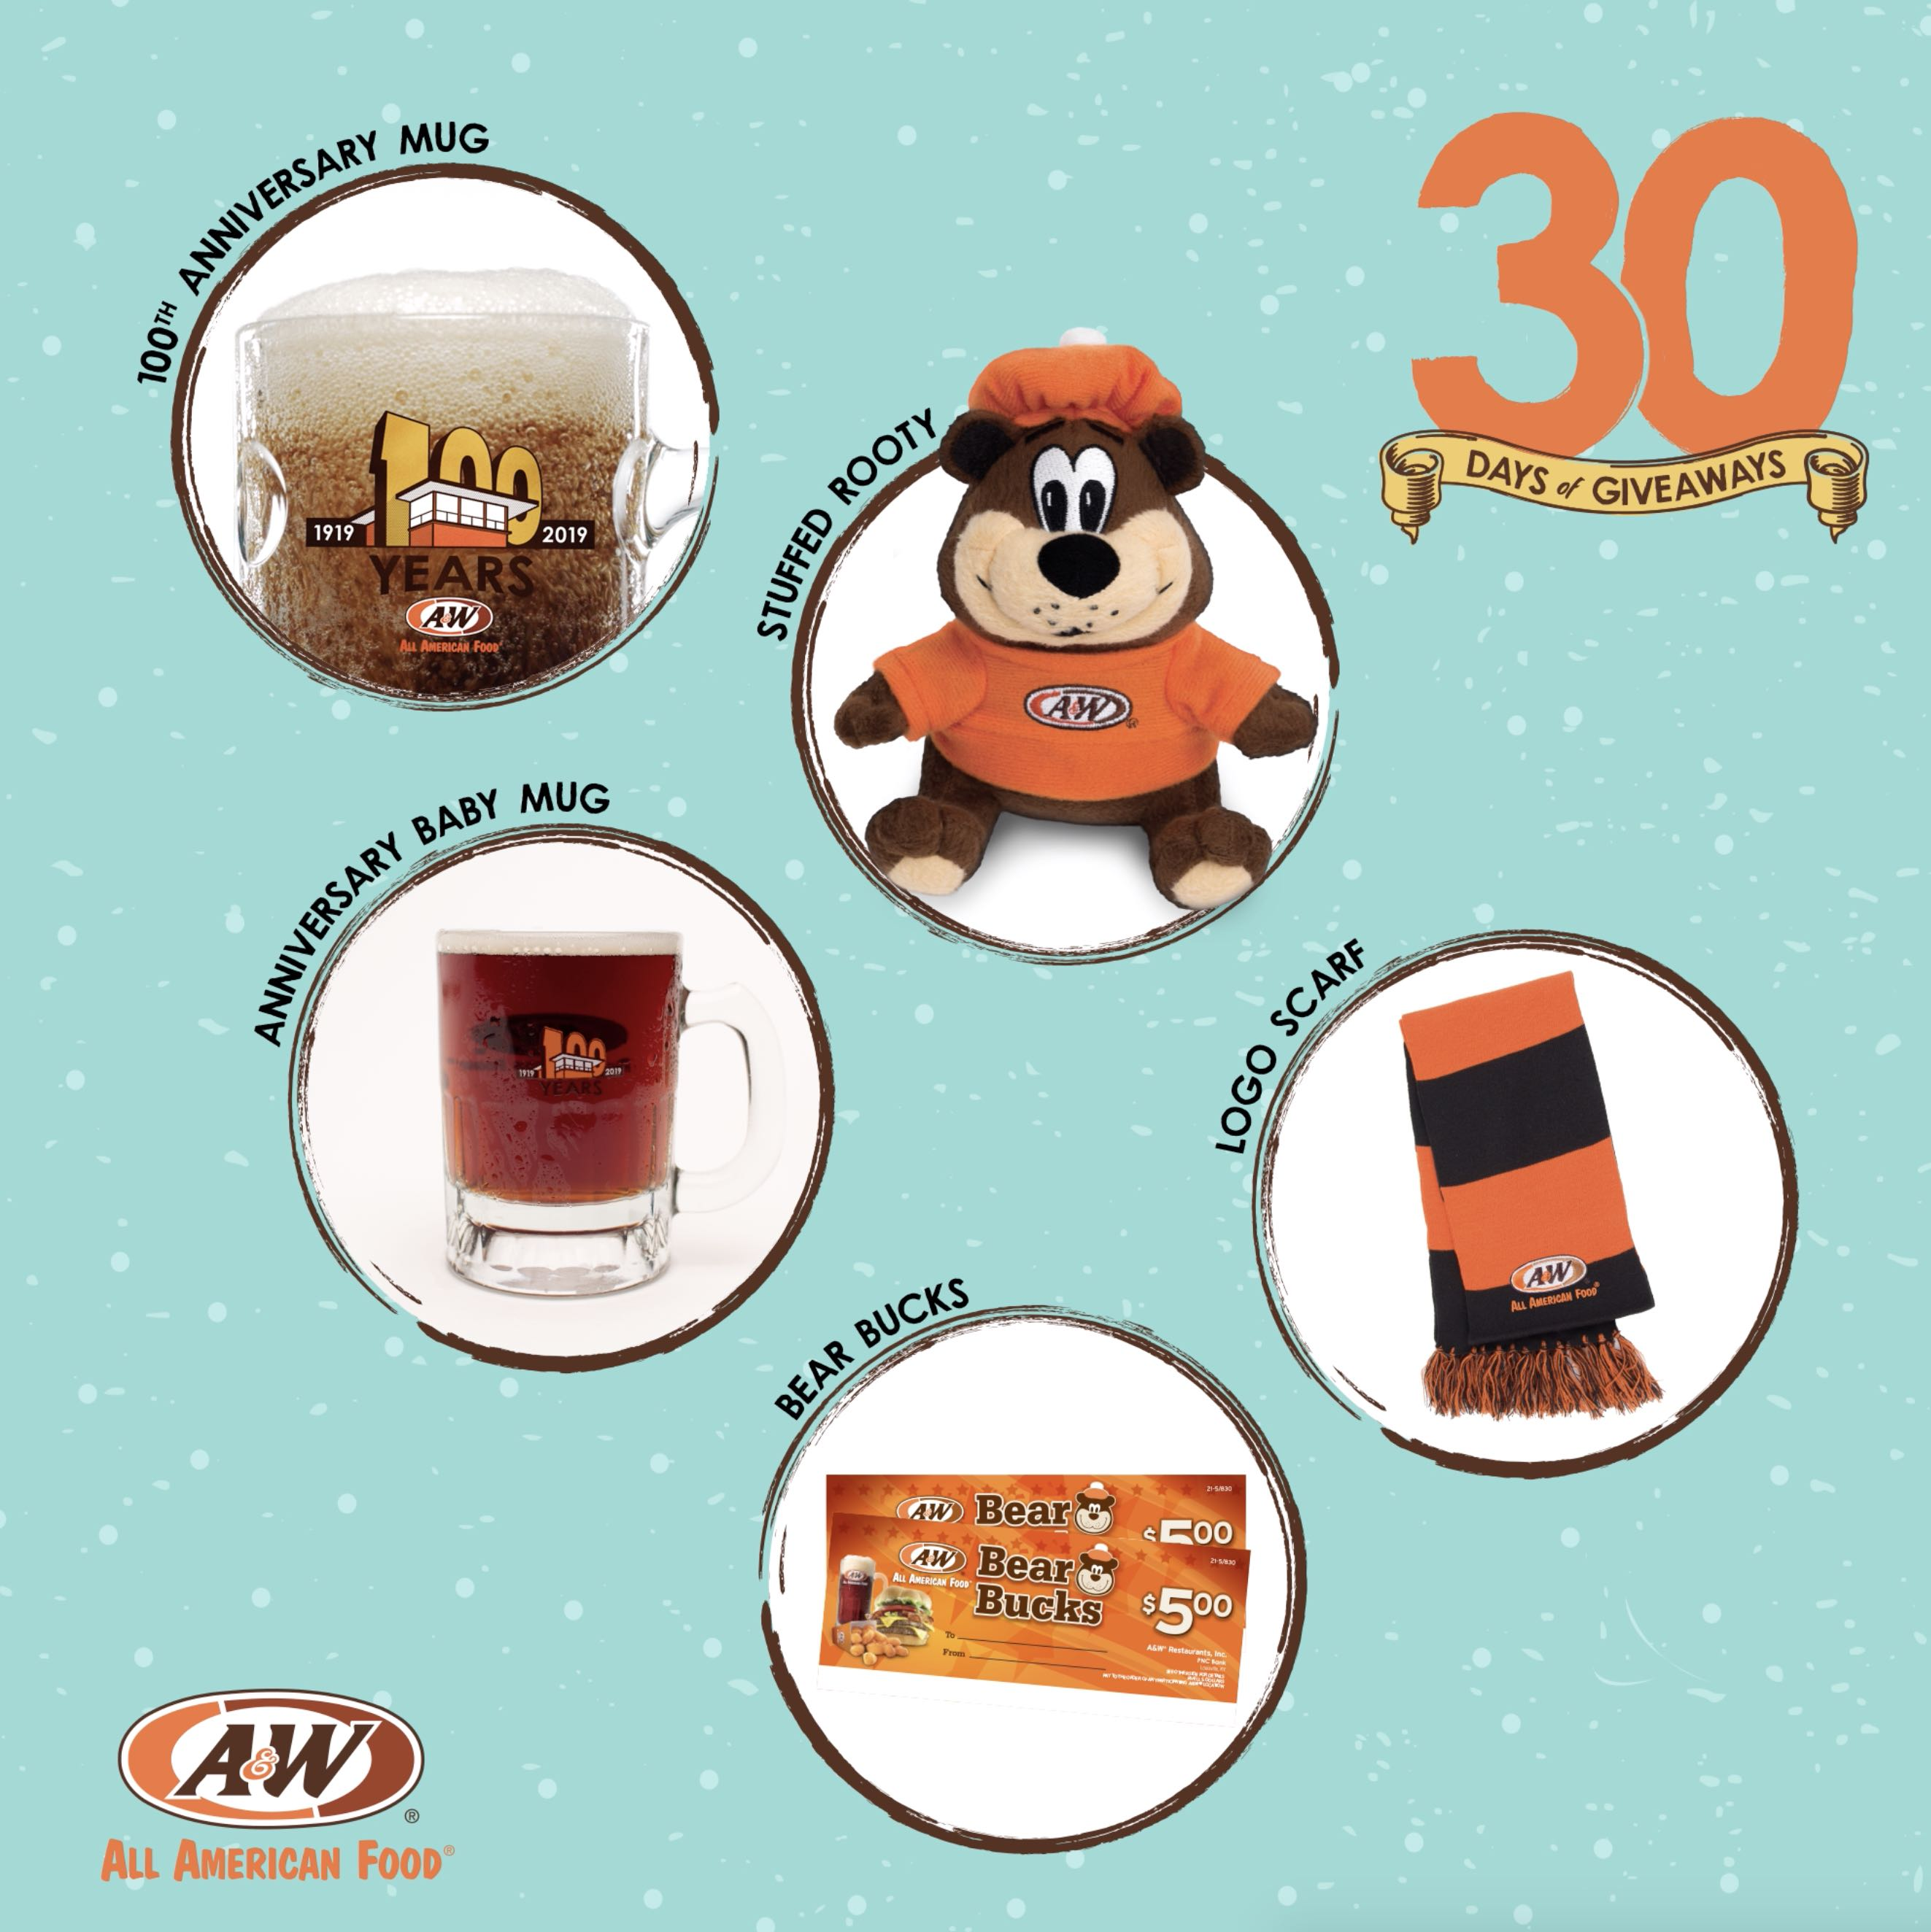 Bear Bucks, Stuffed Rooty, 100th Anniversary Baby Mug, 100th Anniversary Collector's Mug, Scarf on a blue background. 30 Days of Giveaways logo is on the top right side of the image. A&W Restaurants logo is on the bottom left side of the image.